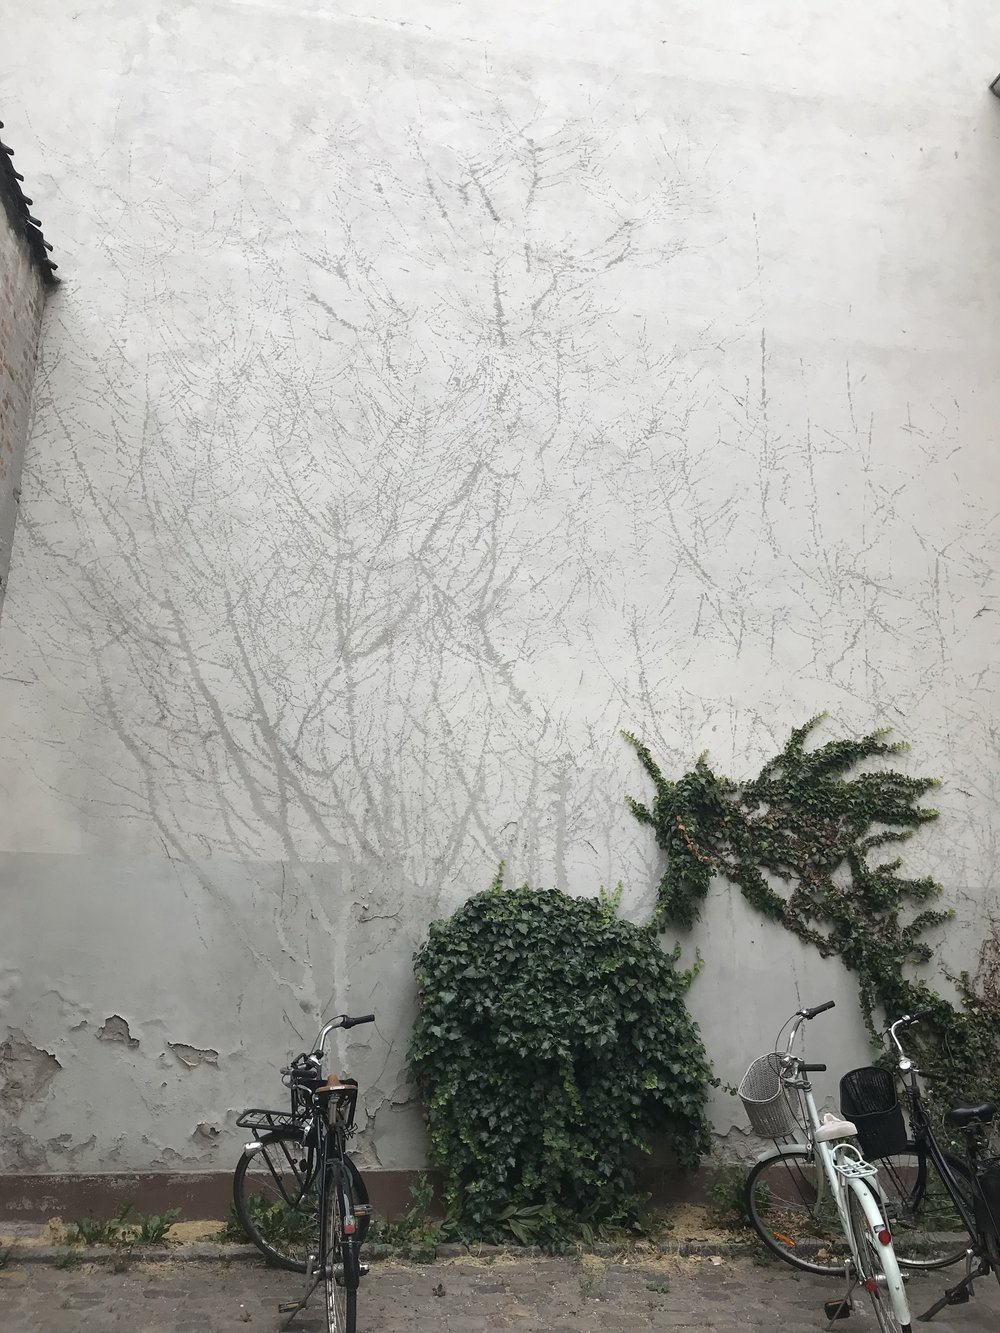 On a wall outside the Danish Design Museum: what remains after some of the ivy was stripped from the wall. I just love this.